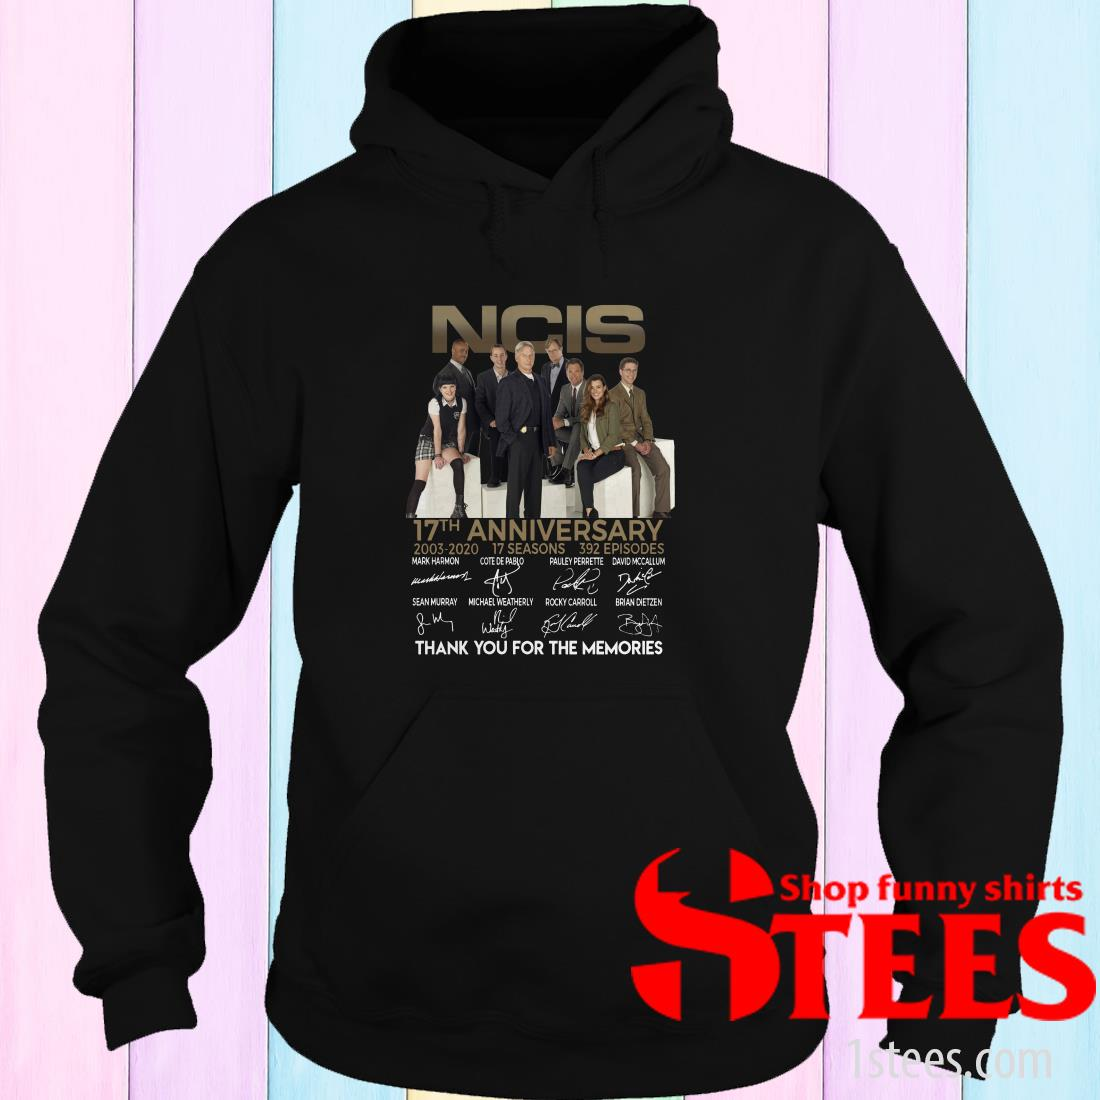 Ncis 17th Anniversary Thank You For The Memories Signature If Hoodie